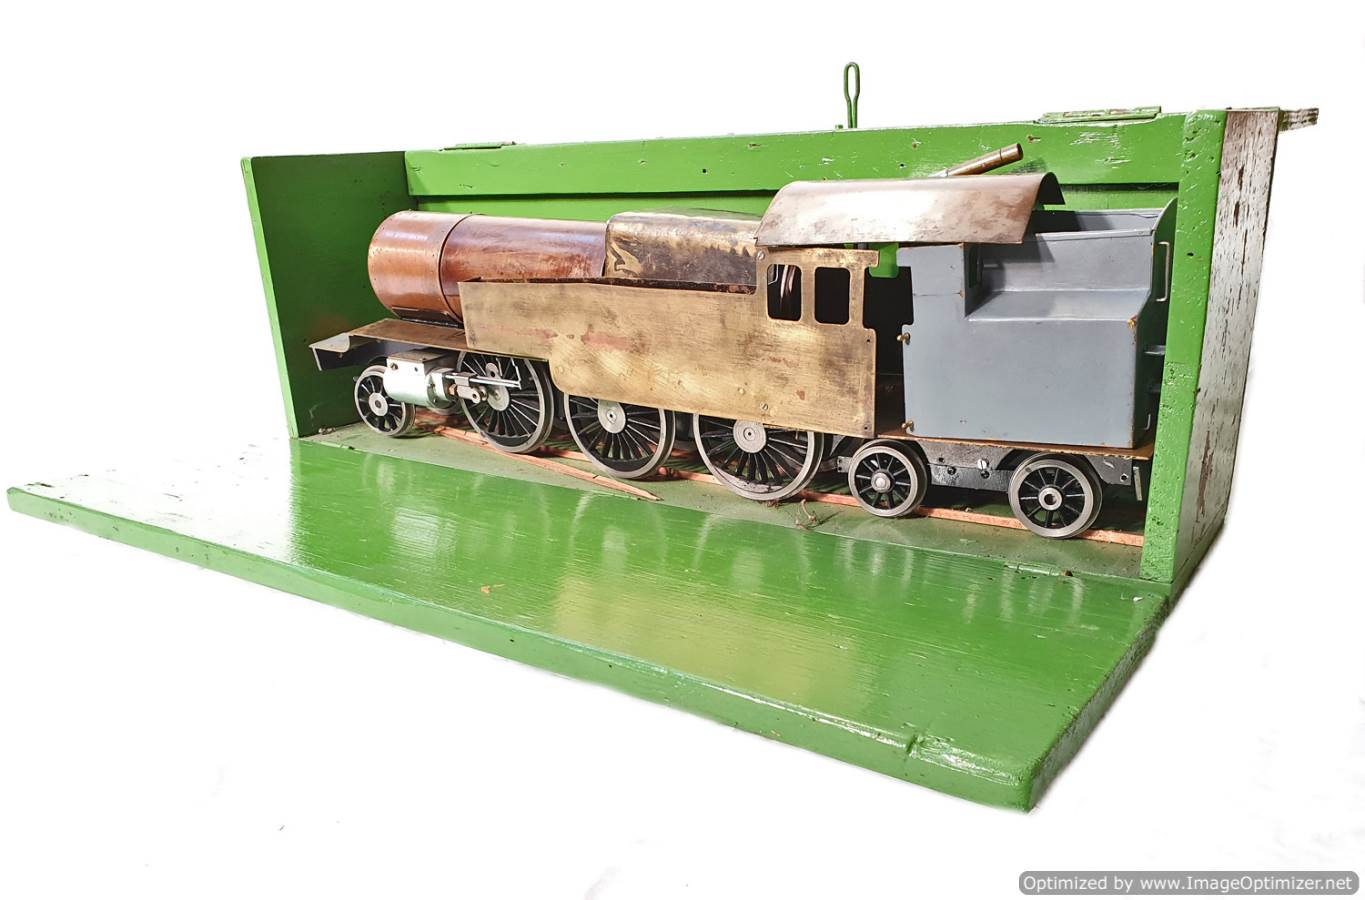 test 2 and a half inch 2-6-4 tank (7)